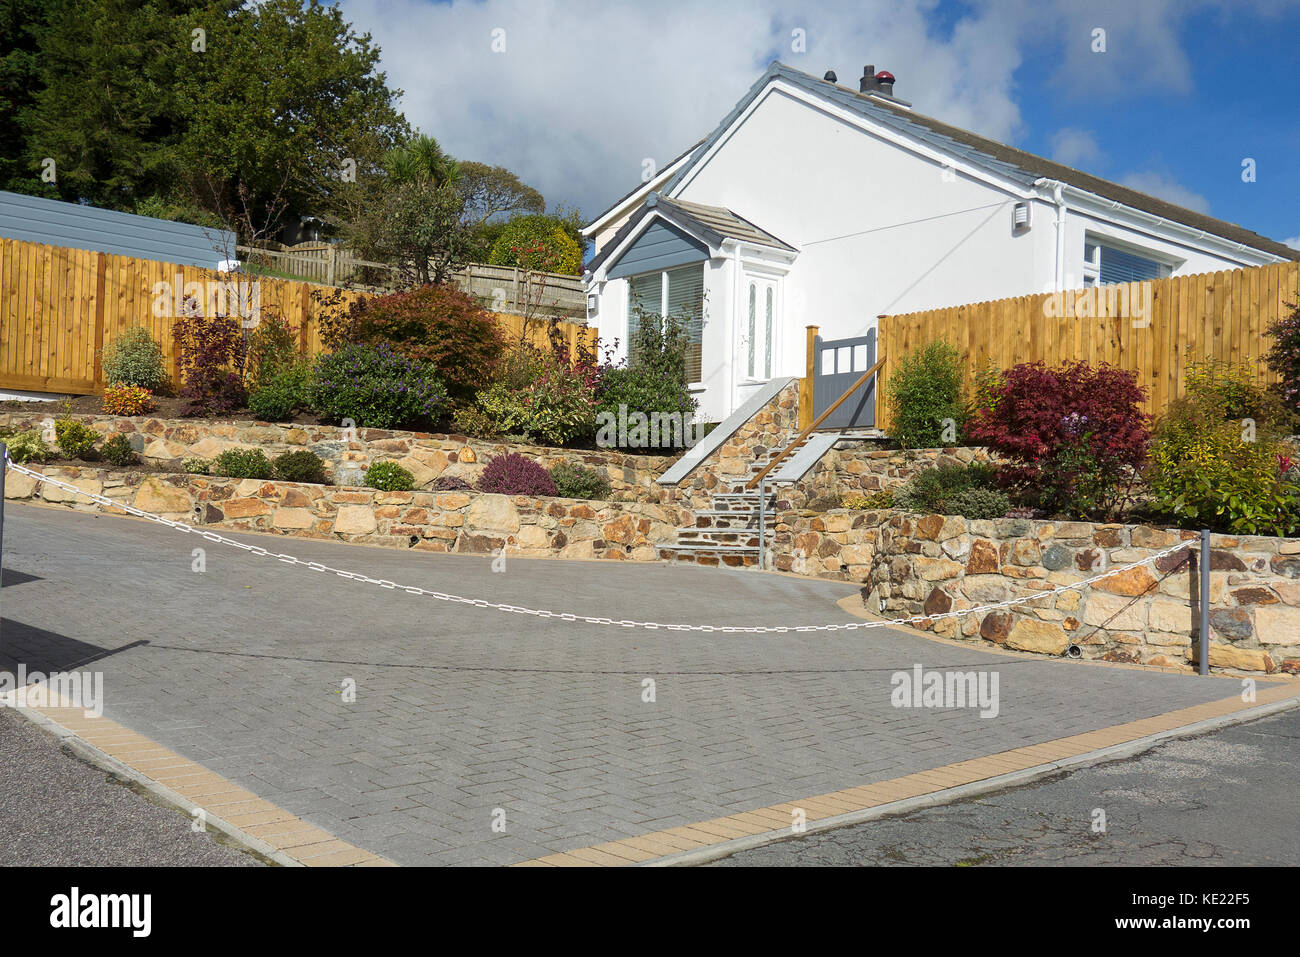 a garden paved with concrete blocks to make a driveway. - Stock Image